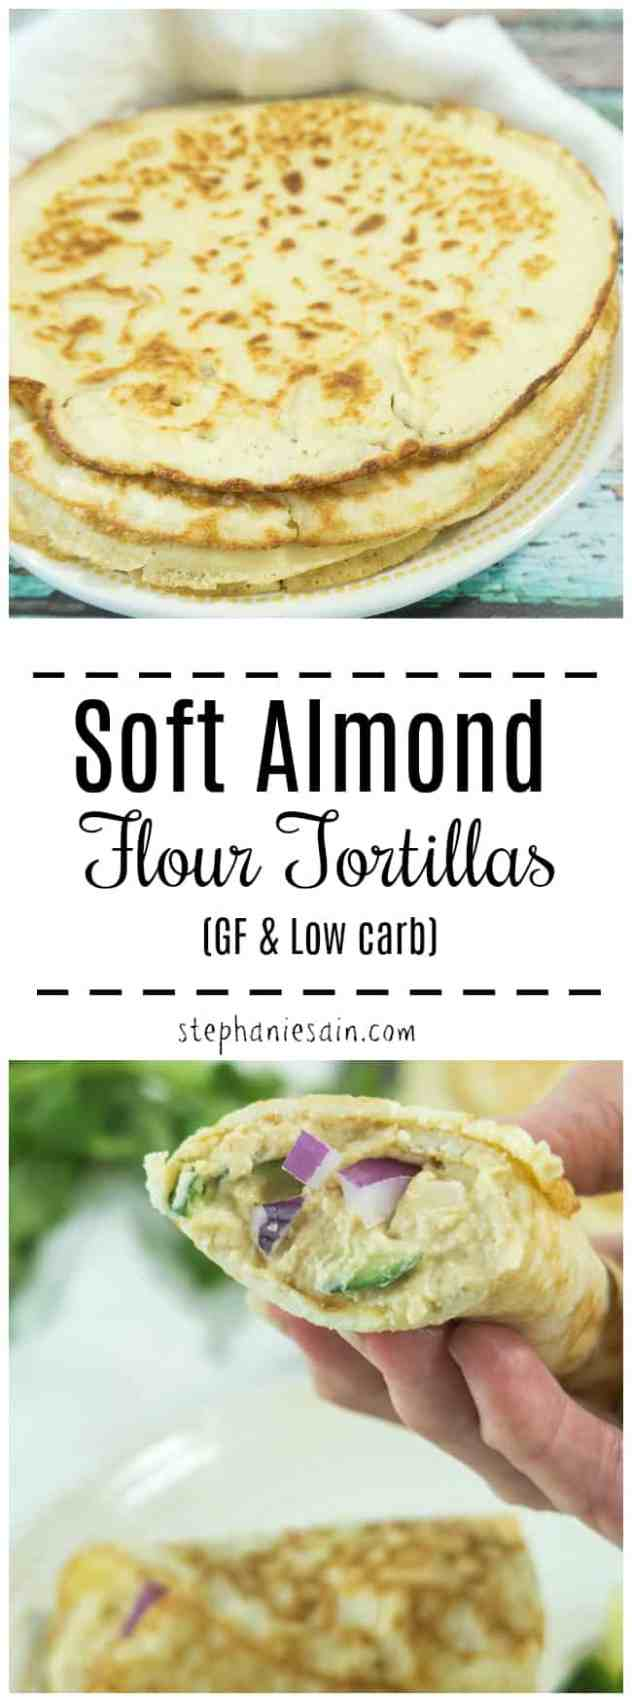 These Soft Almond Flour Tortillas are super soft, pliable and perfect for all your wrapping needs. Great for burritos, tacos, sandwiches and much more. Gluten Free & Low carb.